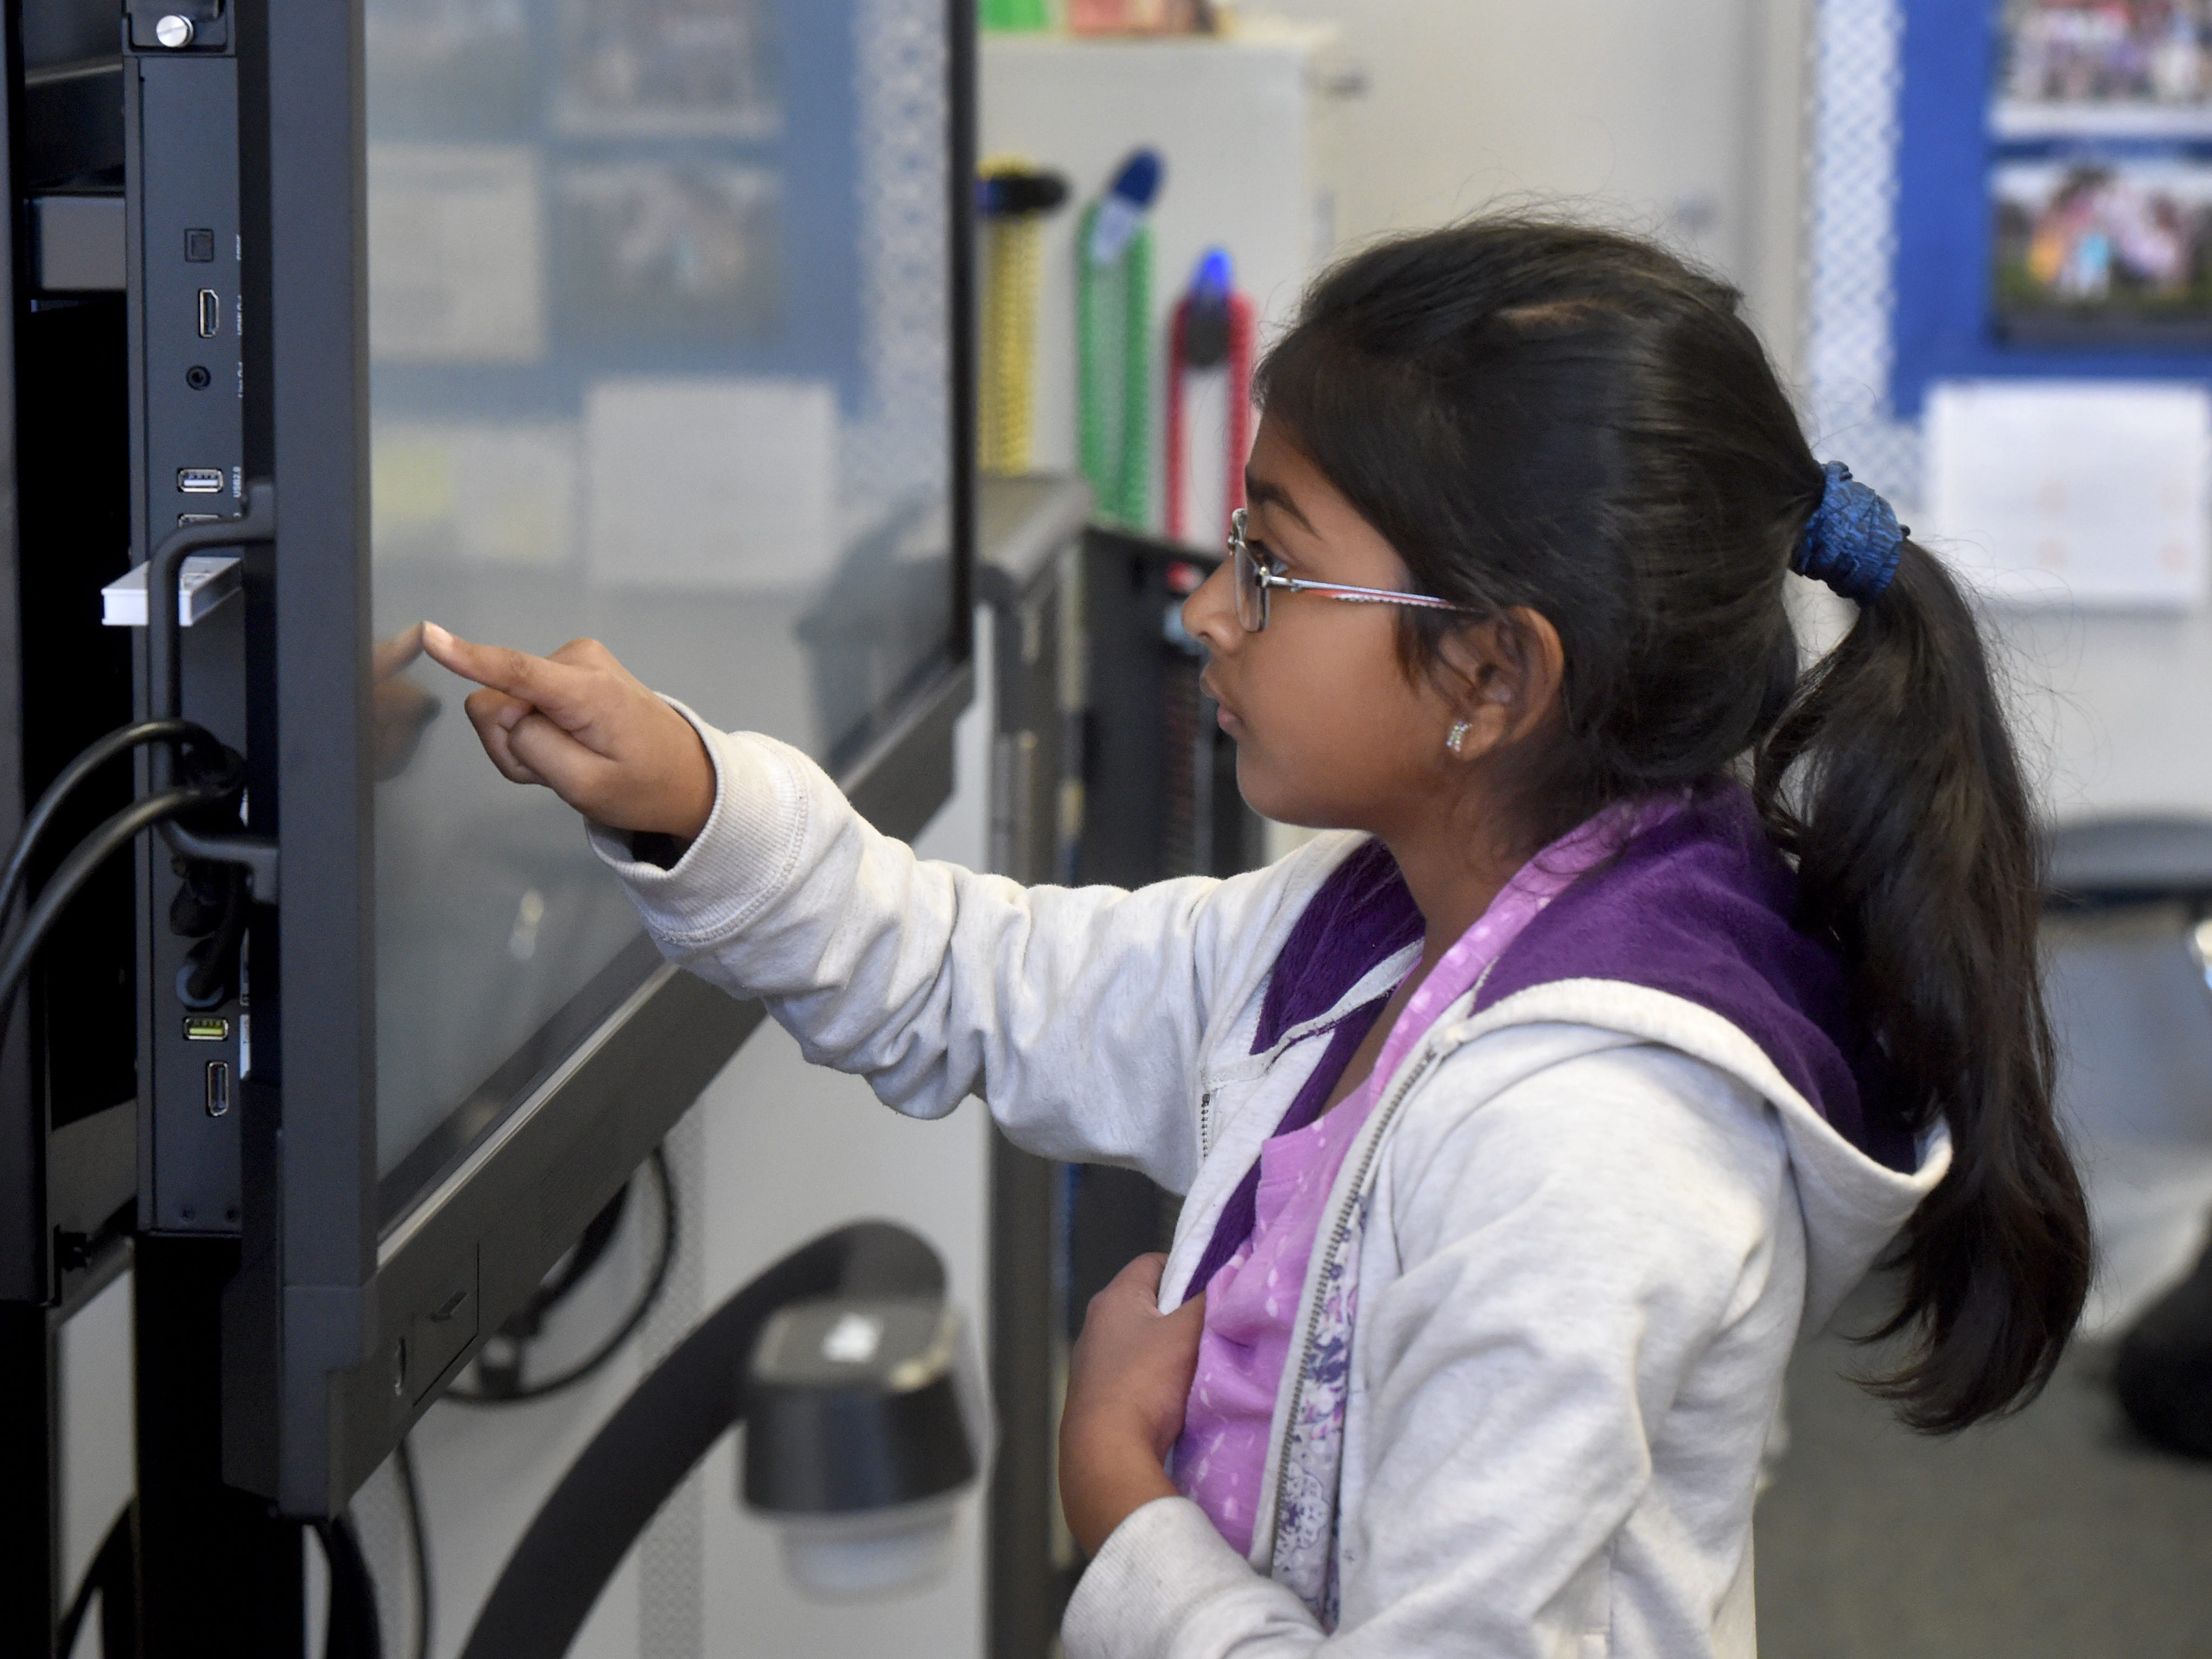 Karvi Patil, a fourth-grader at Mariposa School in Camarillo, answers questions using touch-screen display during class on a recent Monday. The Pleasant Valley School District is using funds from Measure C to purchase technology for the classrooms.